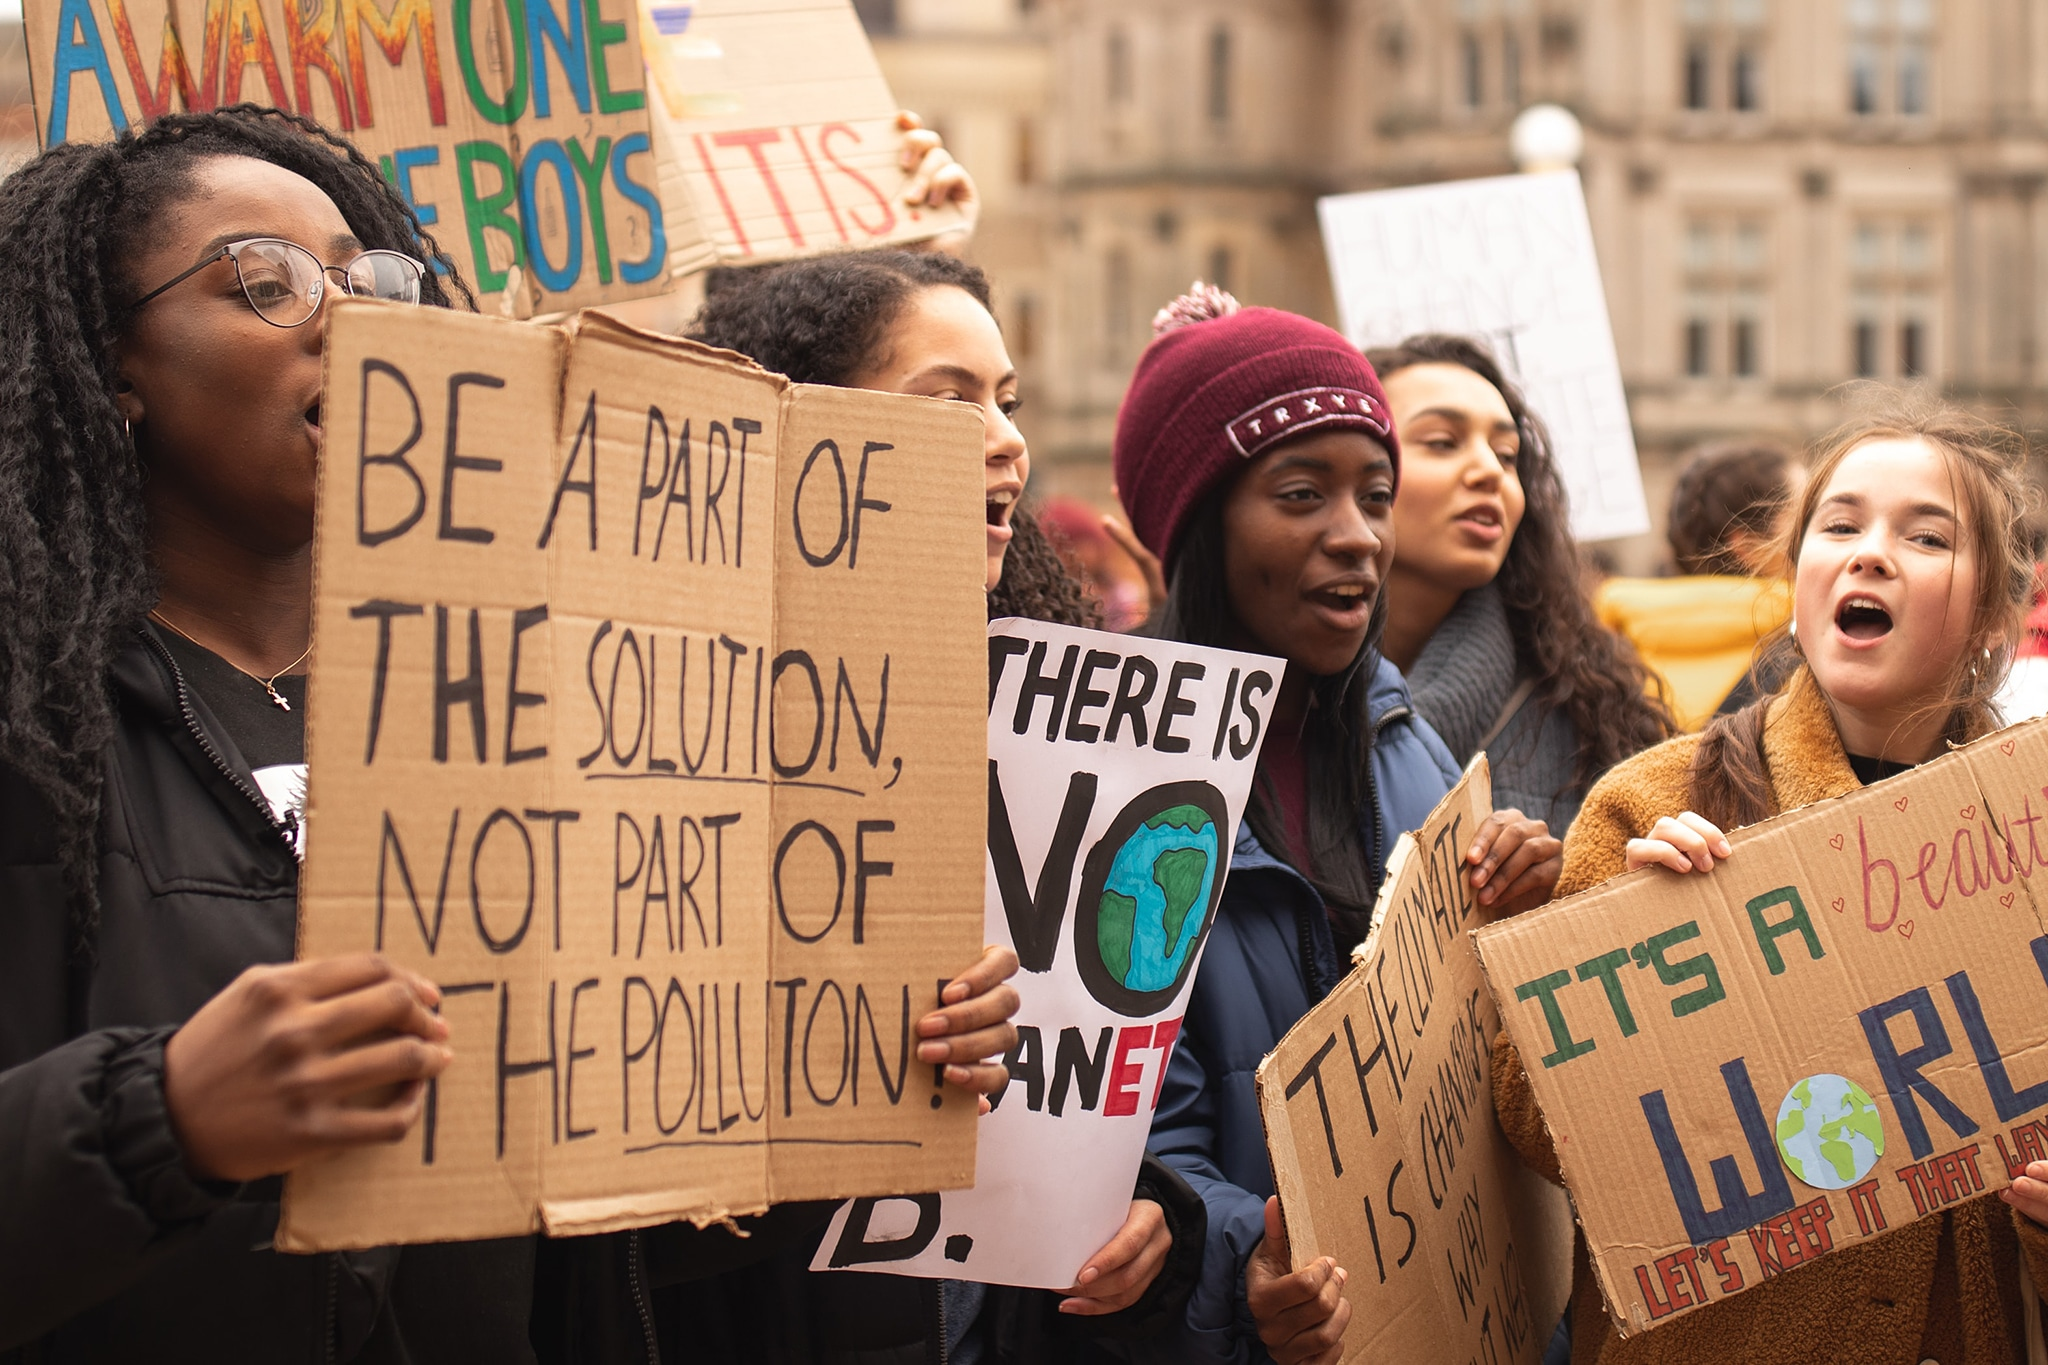 Young women demonstrating intersectional feminist leadership through social justice activism for the environment